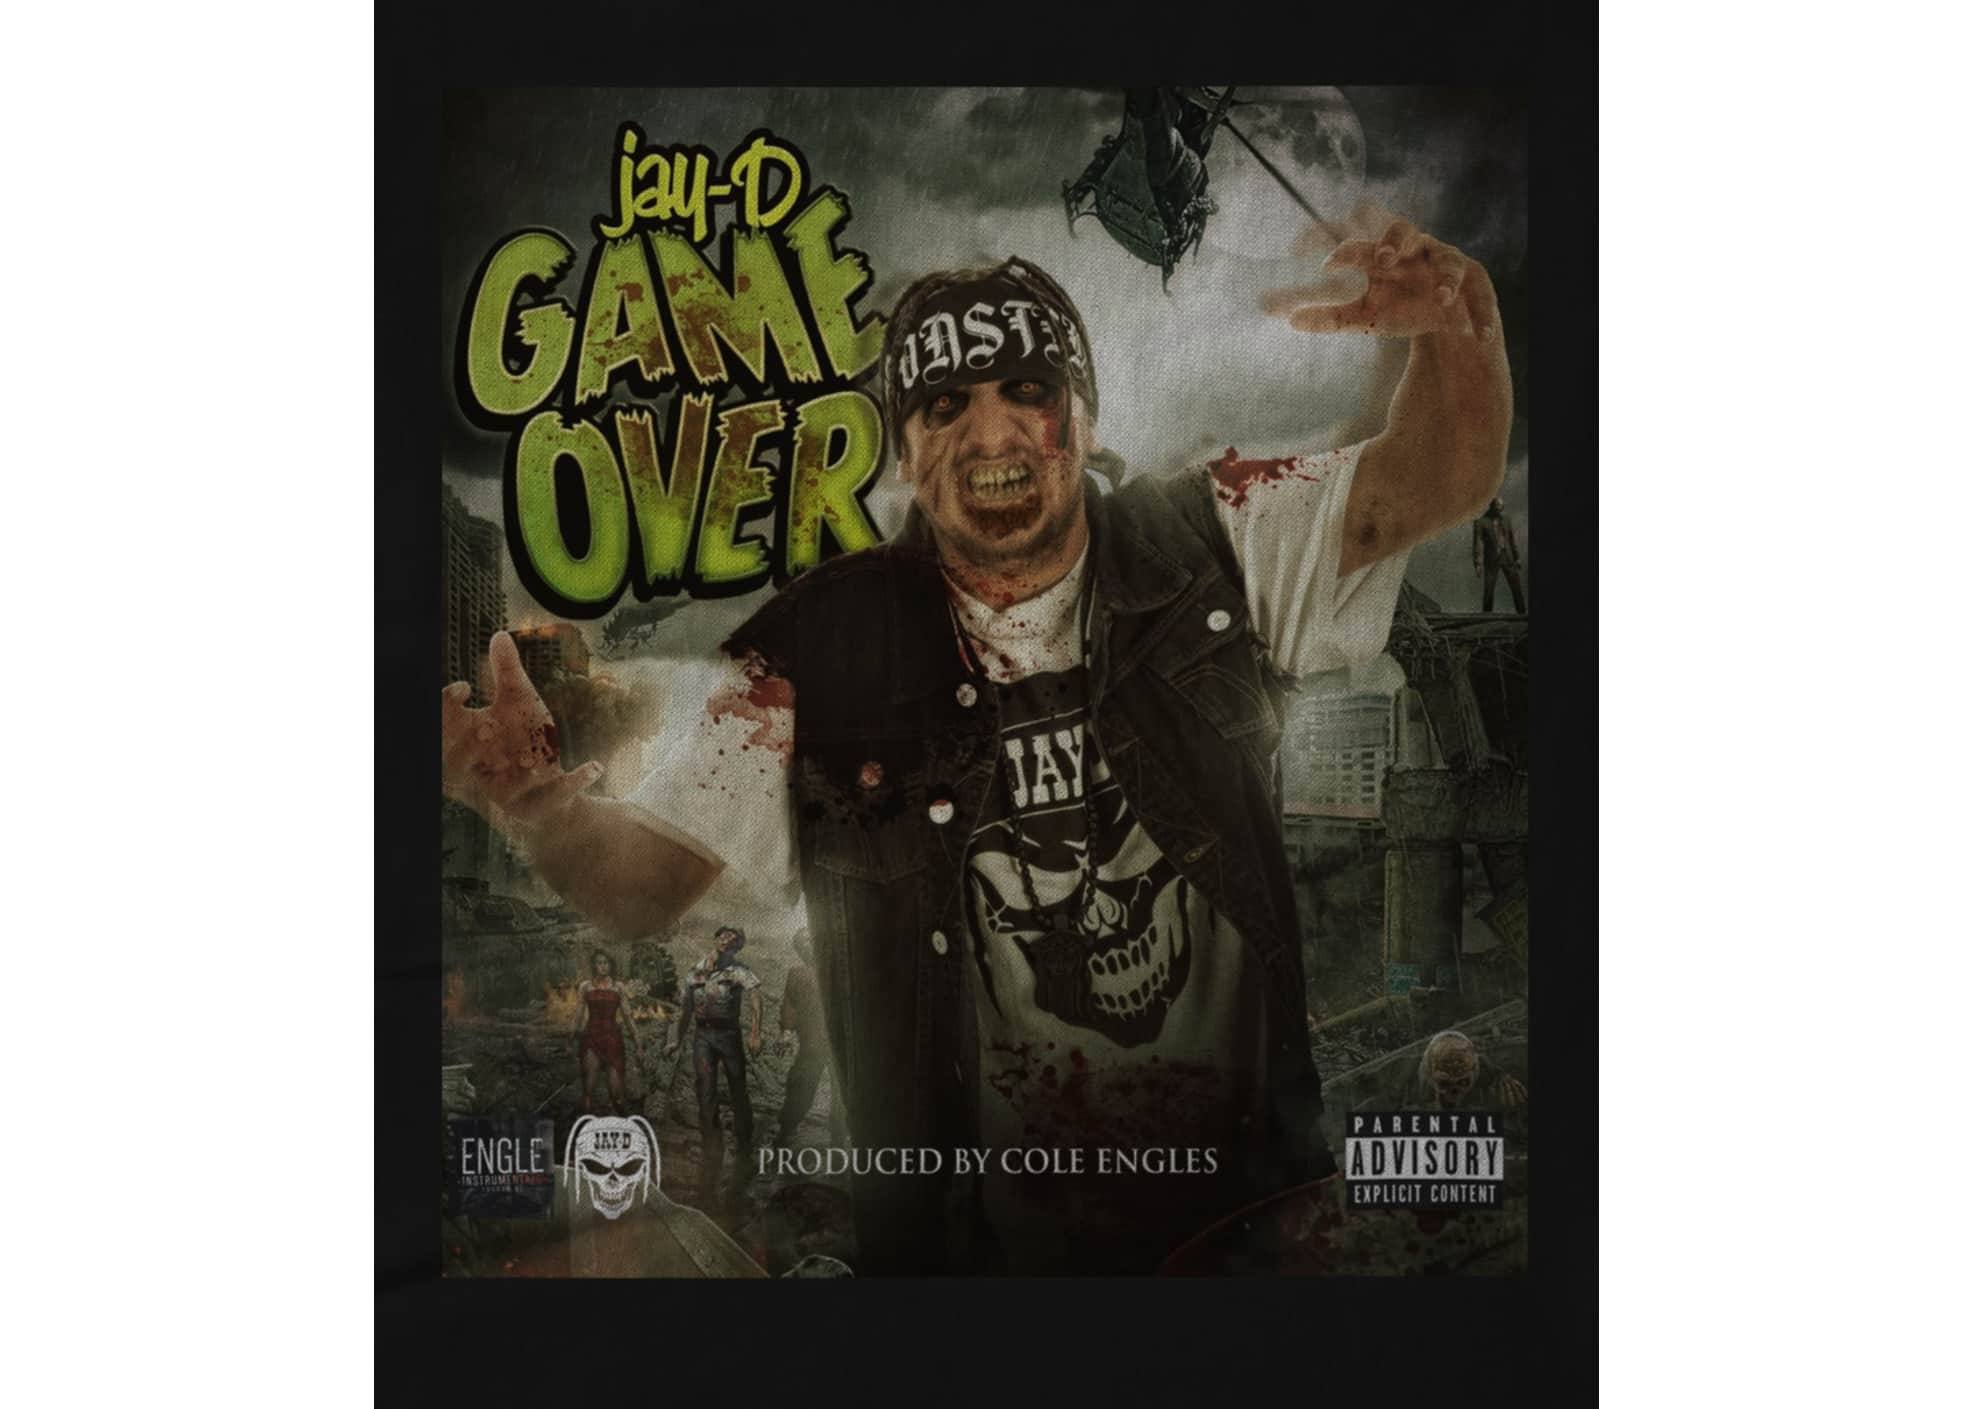 Jay d game over 1608241970